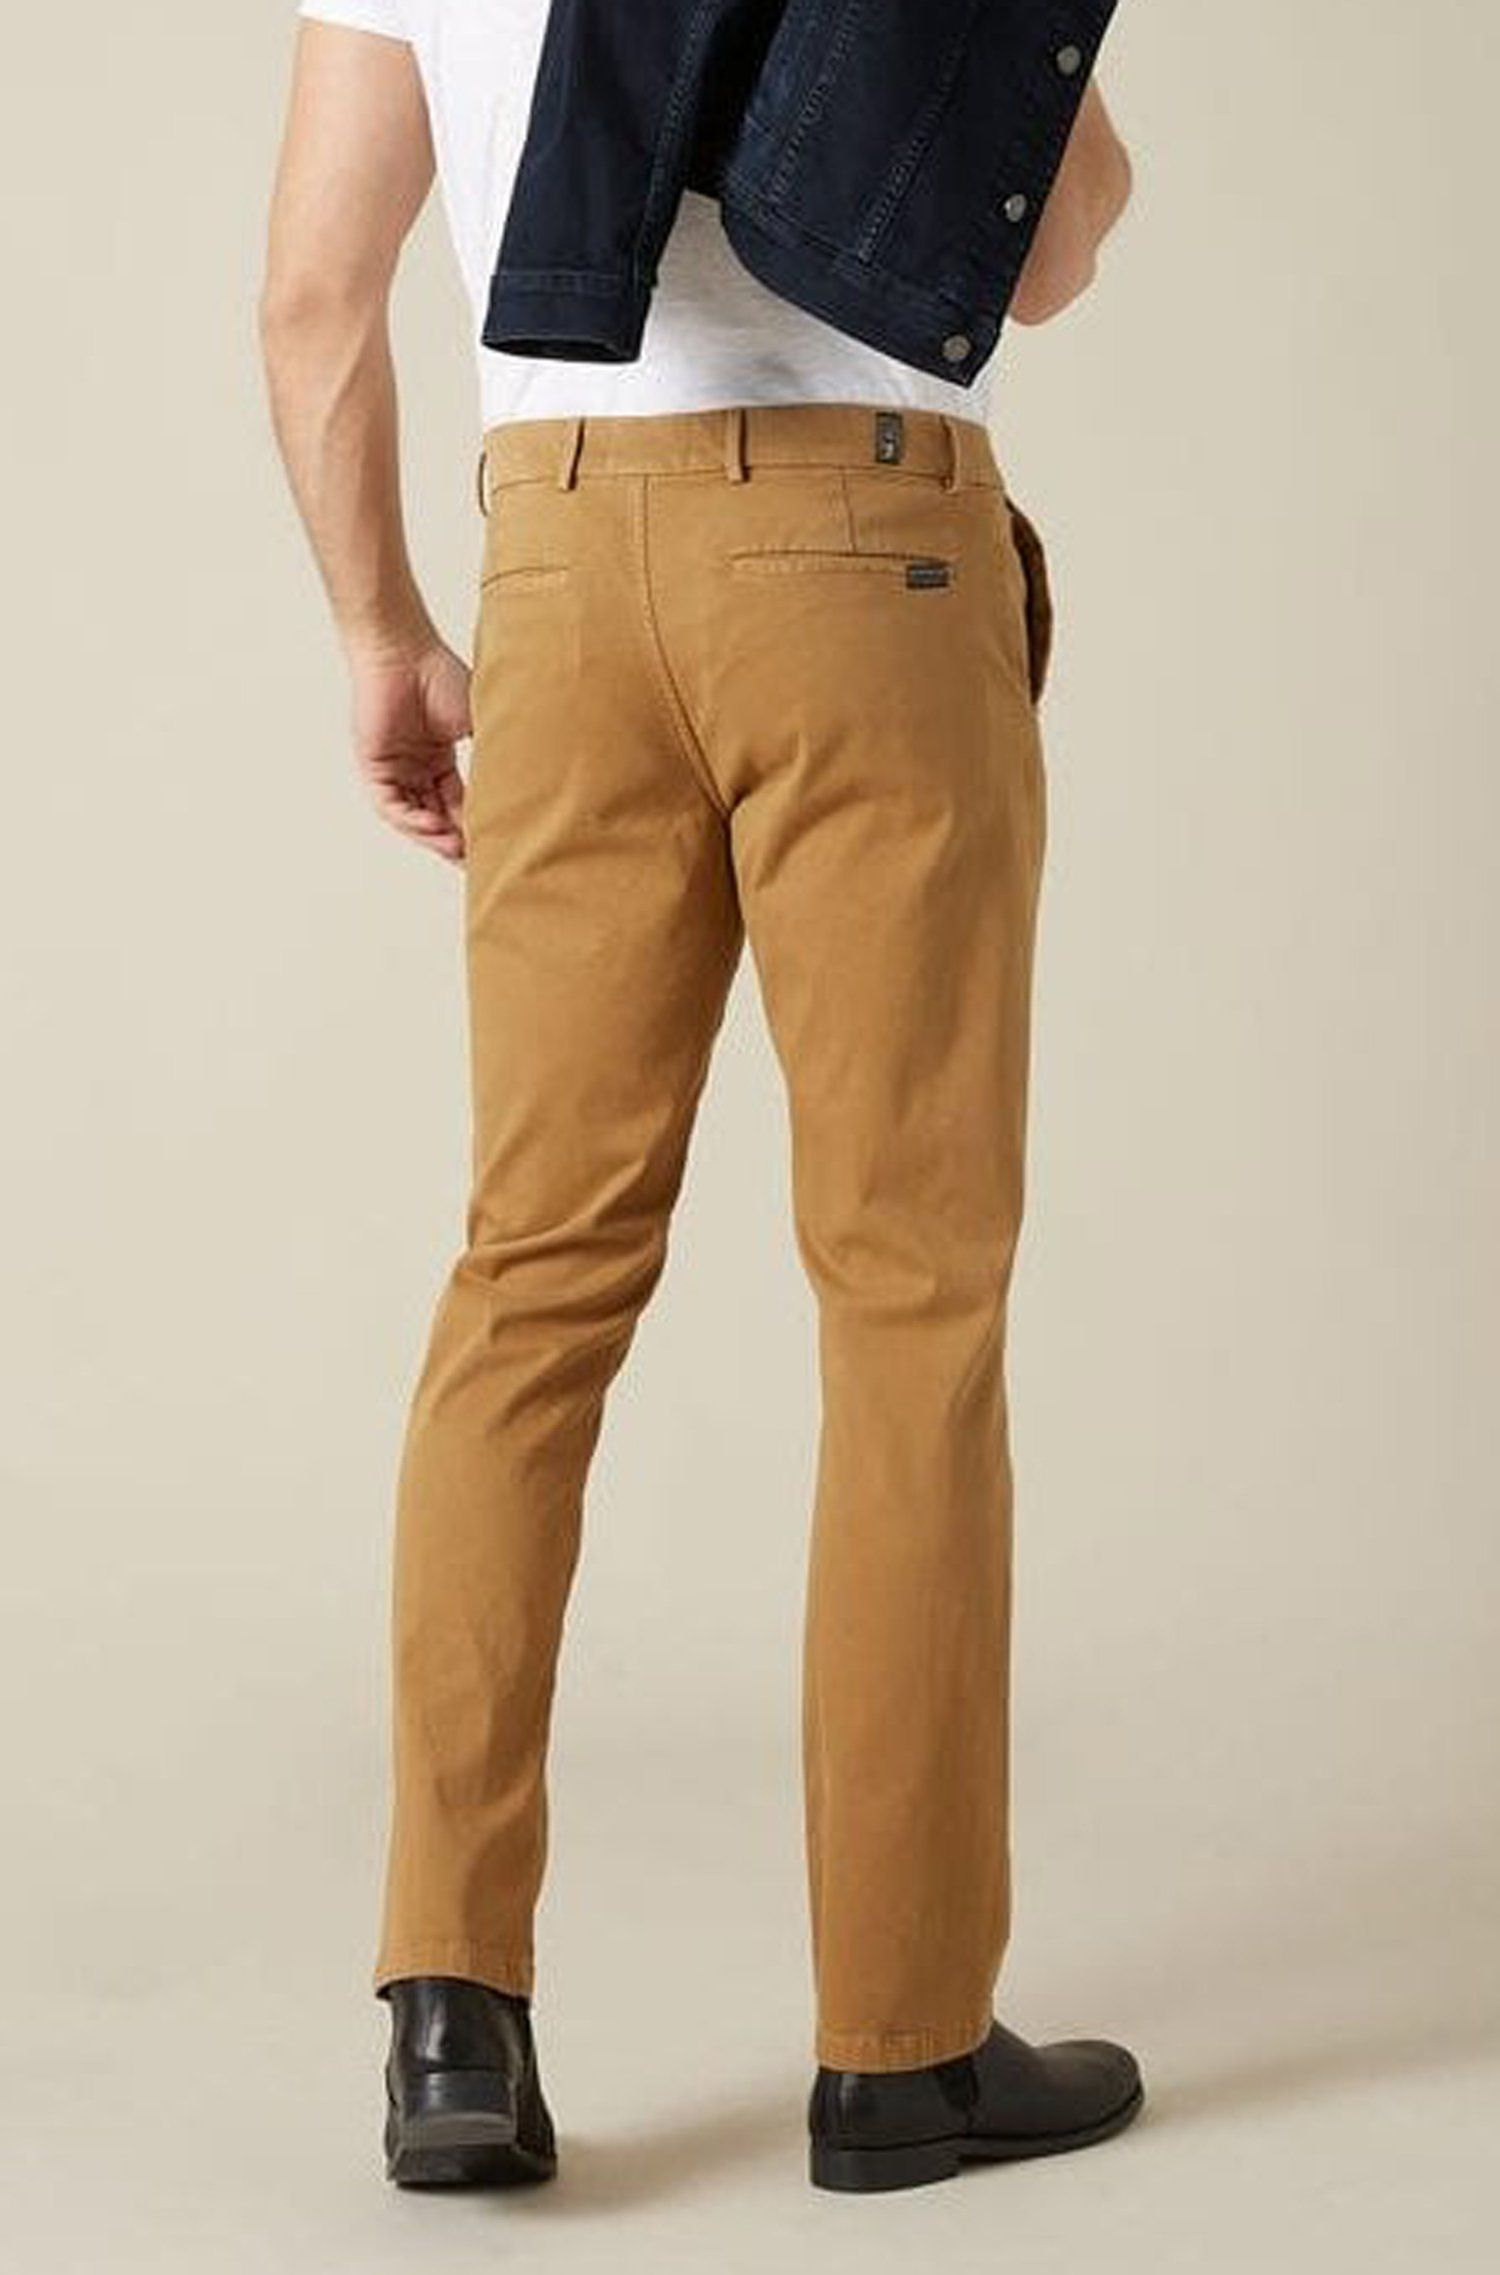 7 For All Mankind - Beige Slimmy Chinos in Luxe Perf Sateen Fabric JSU9T490SA 30